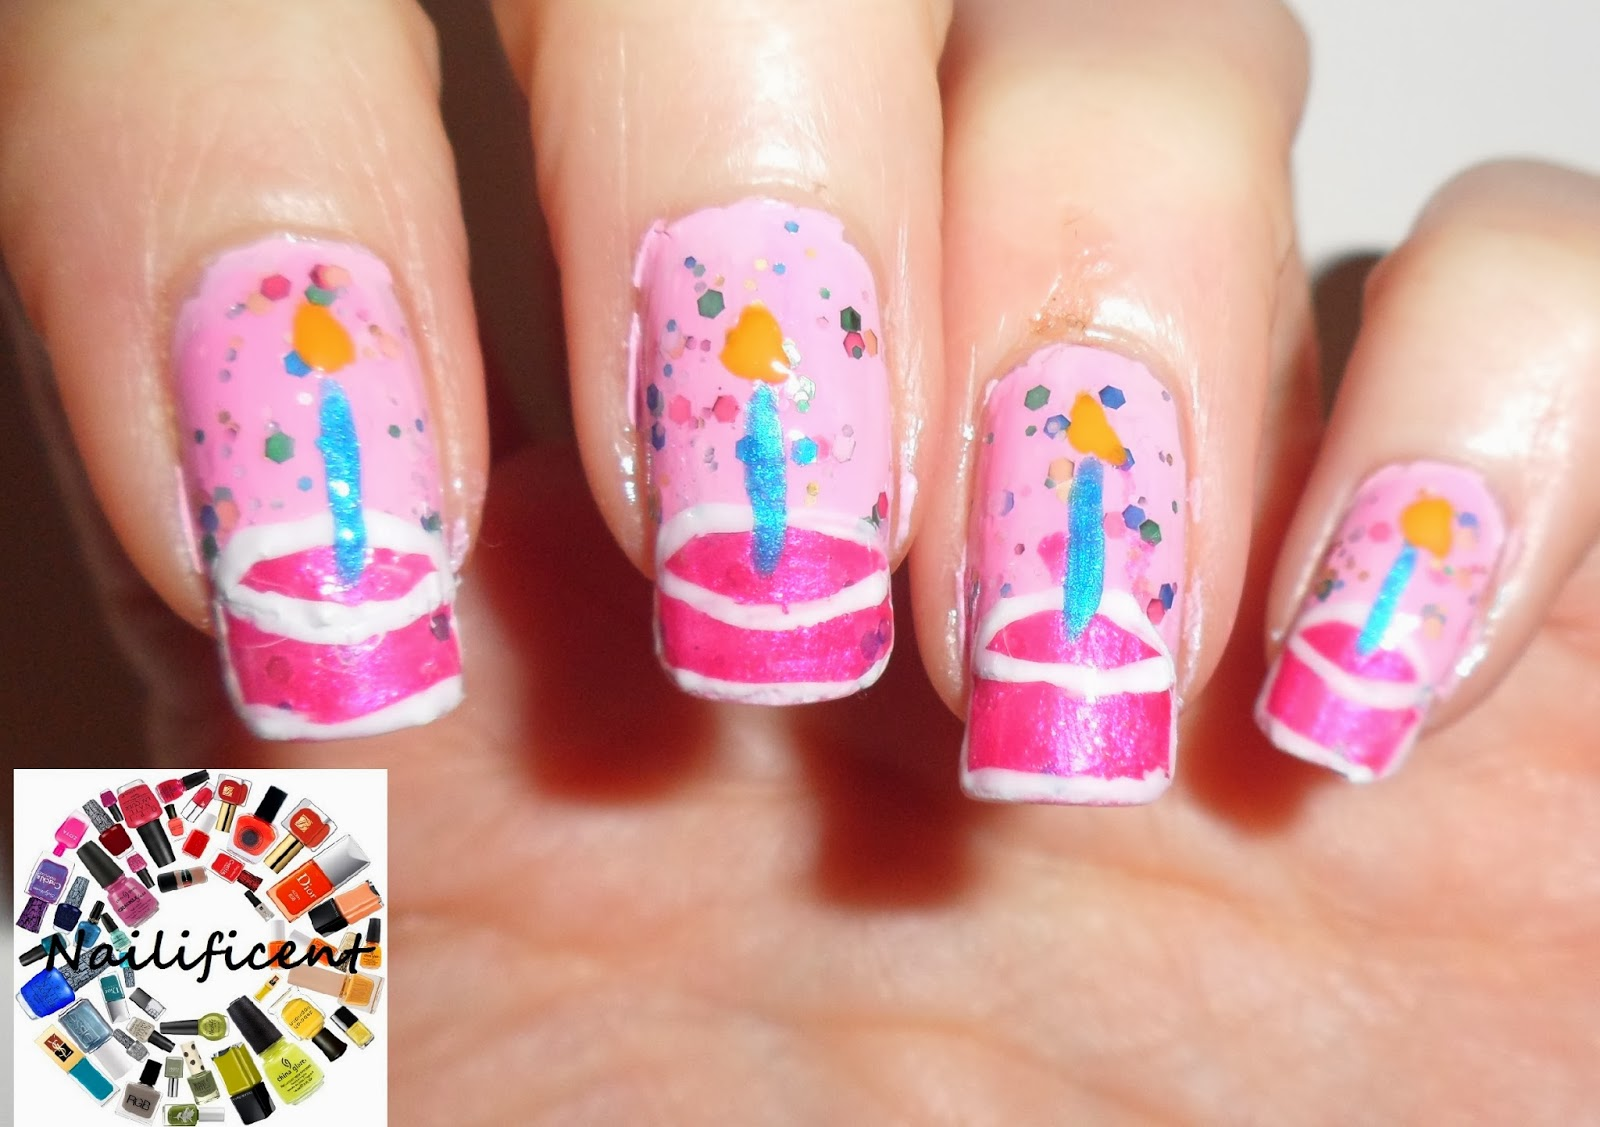 Nailificent: Birthday Cake Nail Art